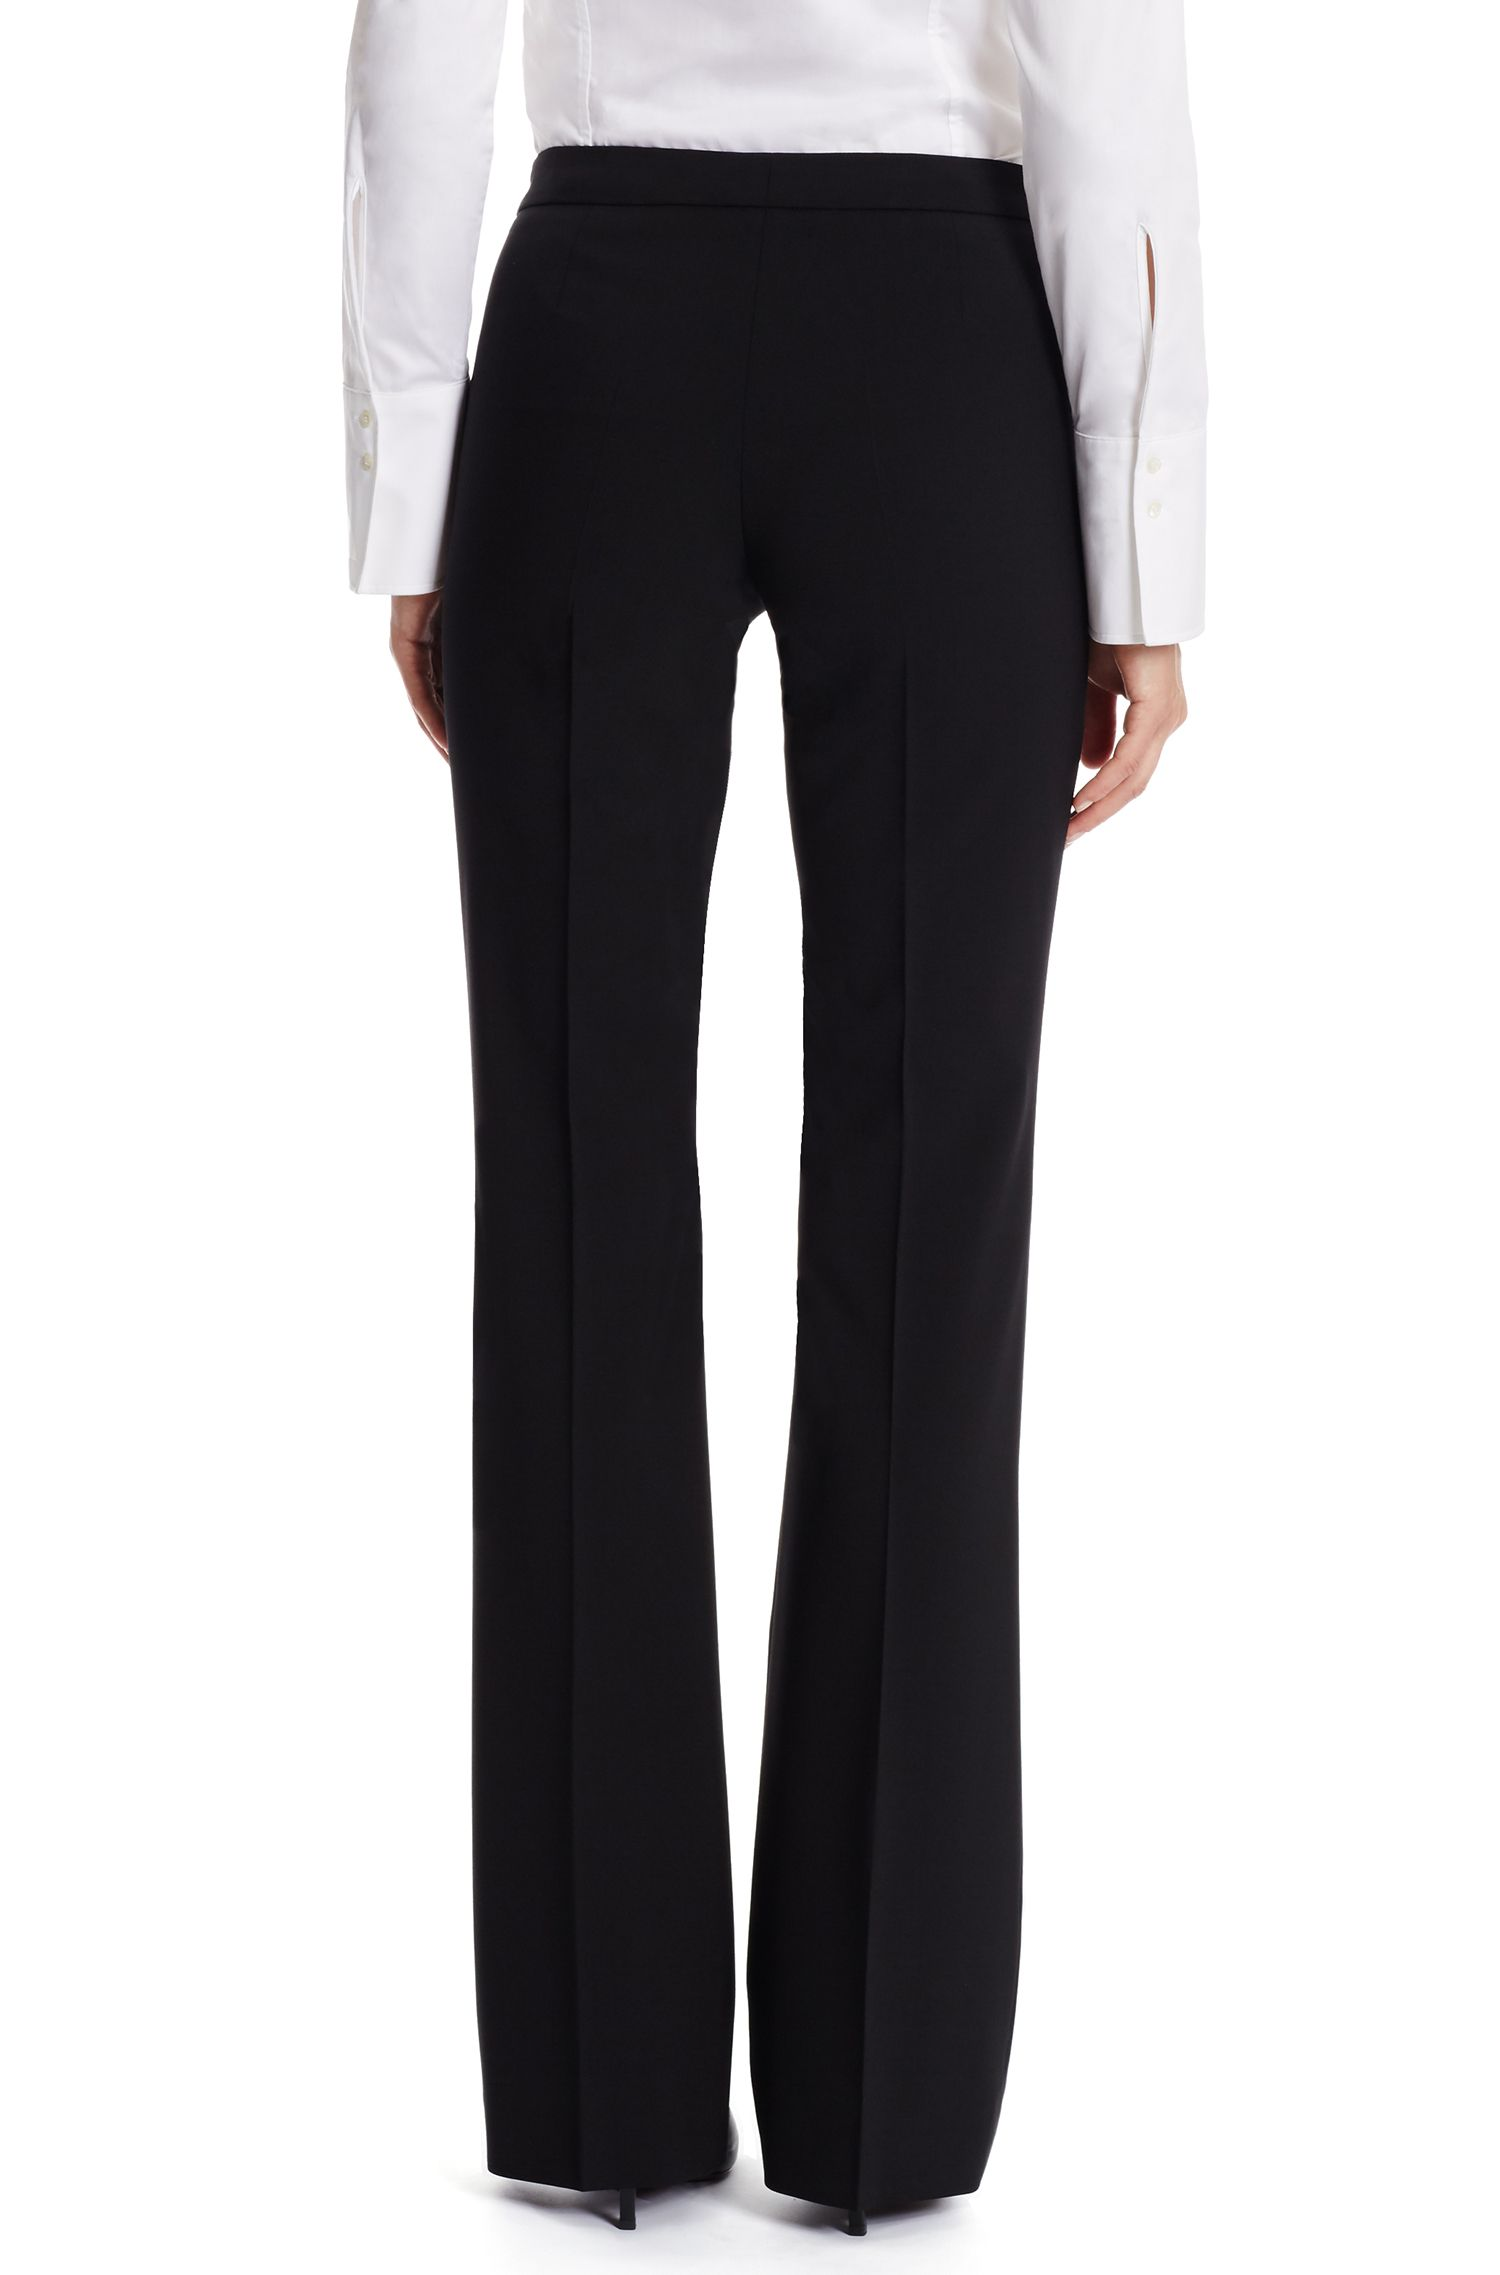 'Tulea Side Zip' | Stretch Virgin Wool Dress Pants